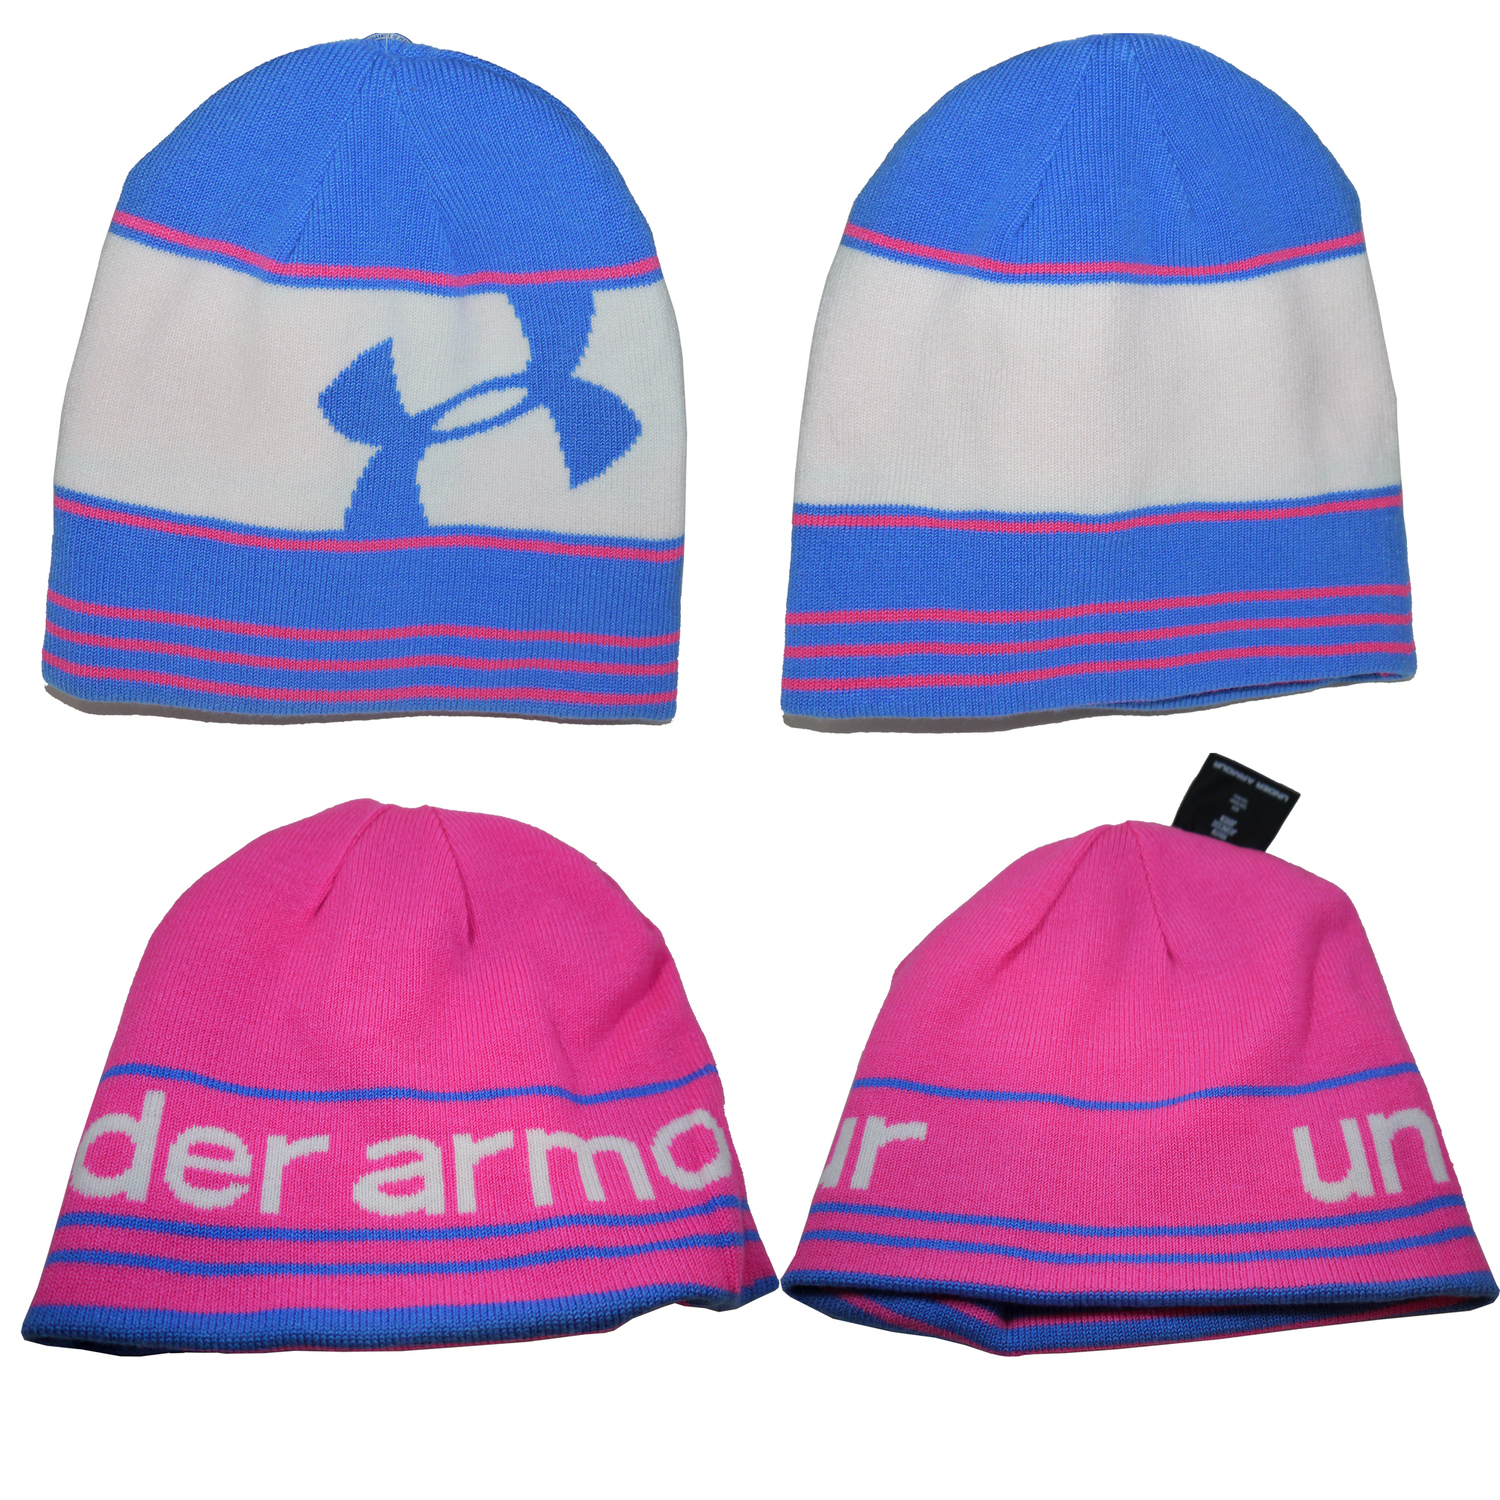 Under Armour Girl's Switch It Up II Blue/White/Pink Reversible Beanie Hat